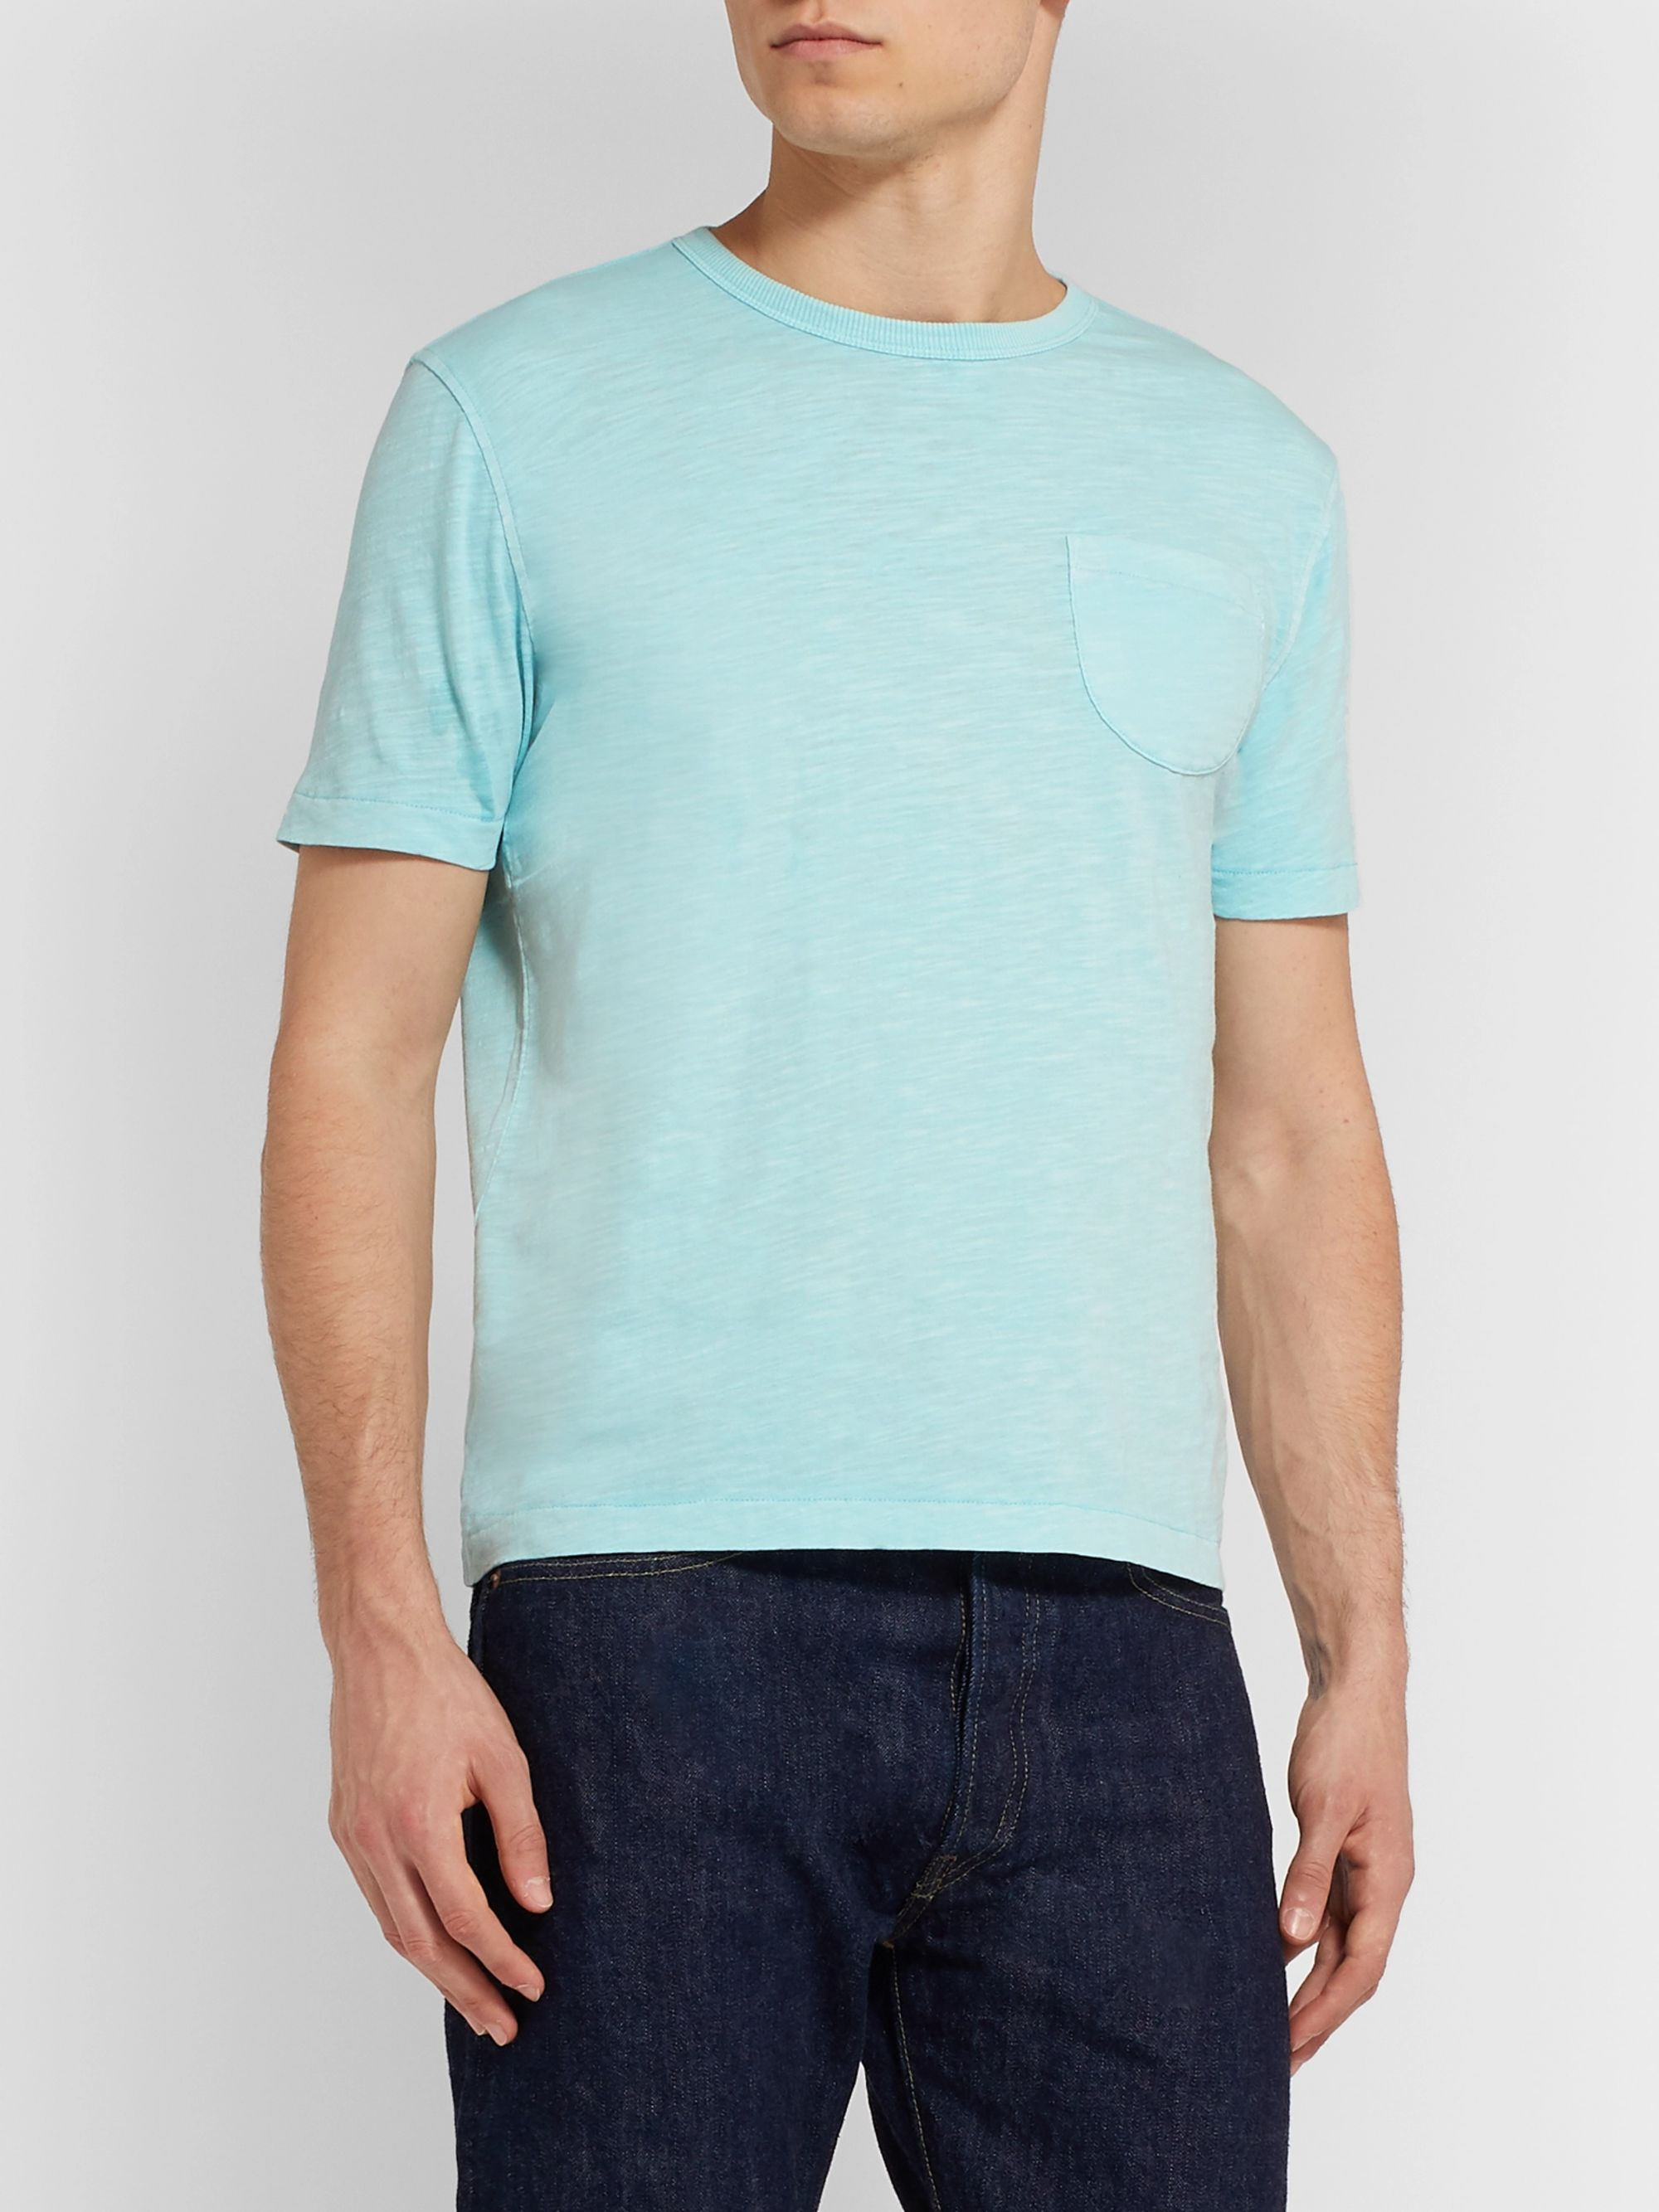 YMC Slim-Fit Slub Cotton-Jersey T-Shirt